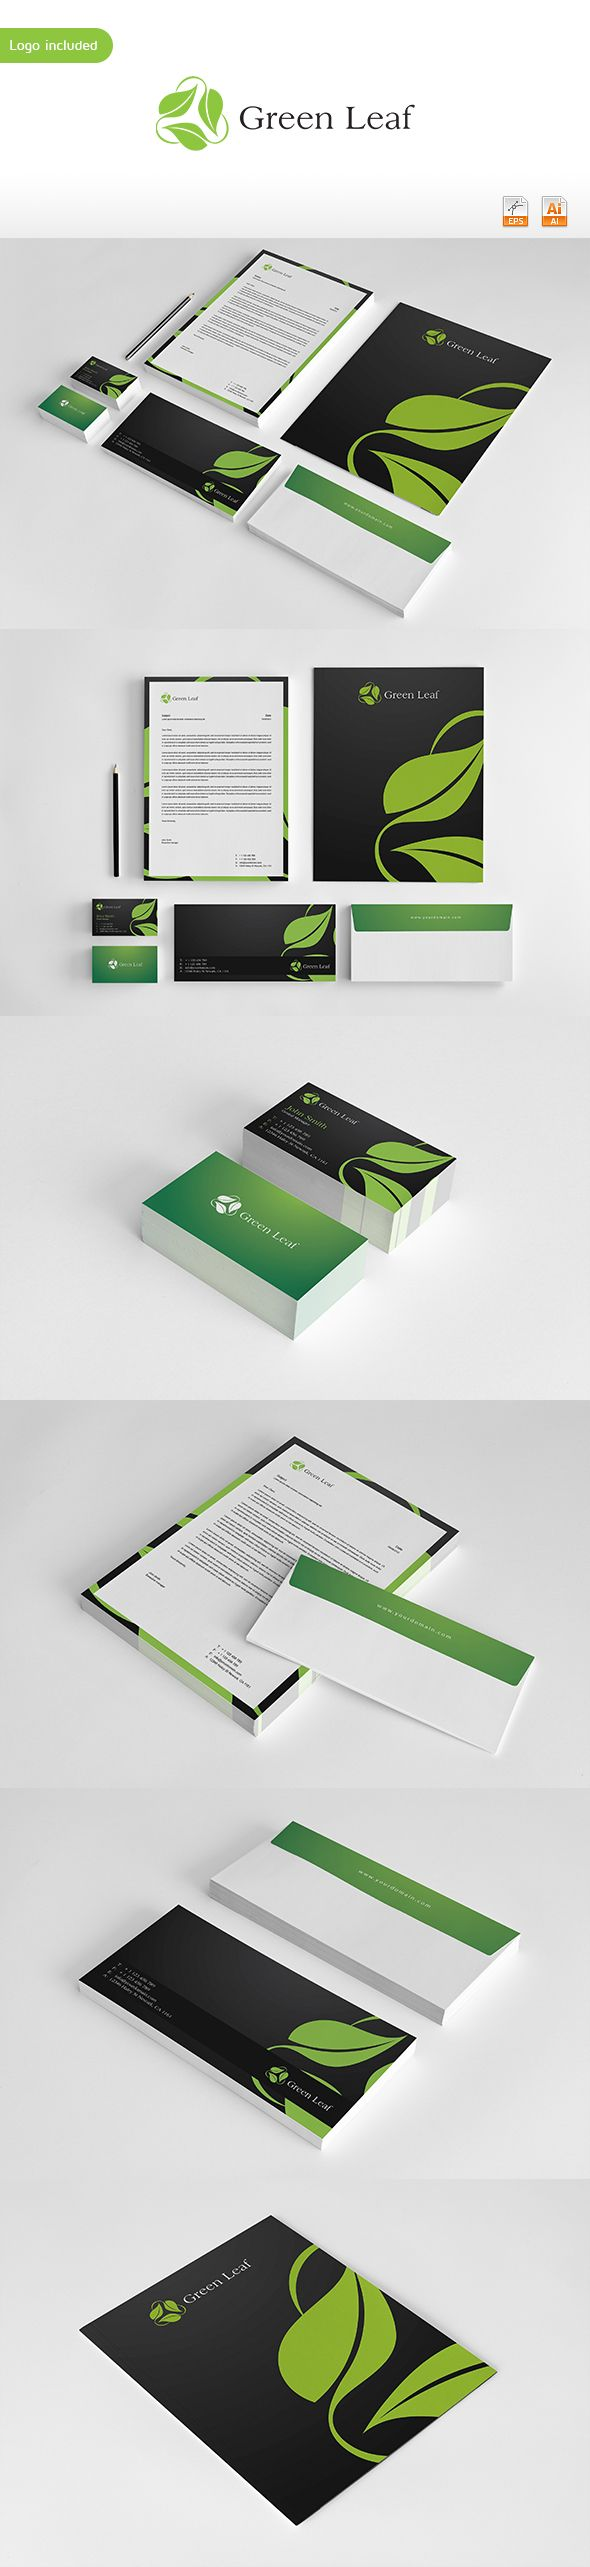 Green Leaf Corporate Identity - Repinned by www.BlickeDeeler.de